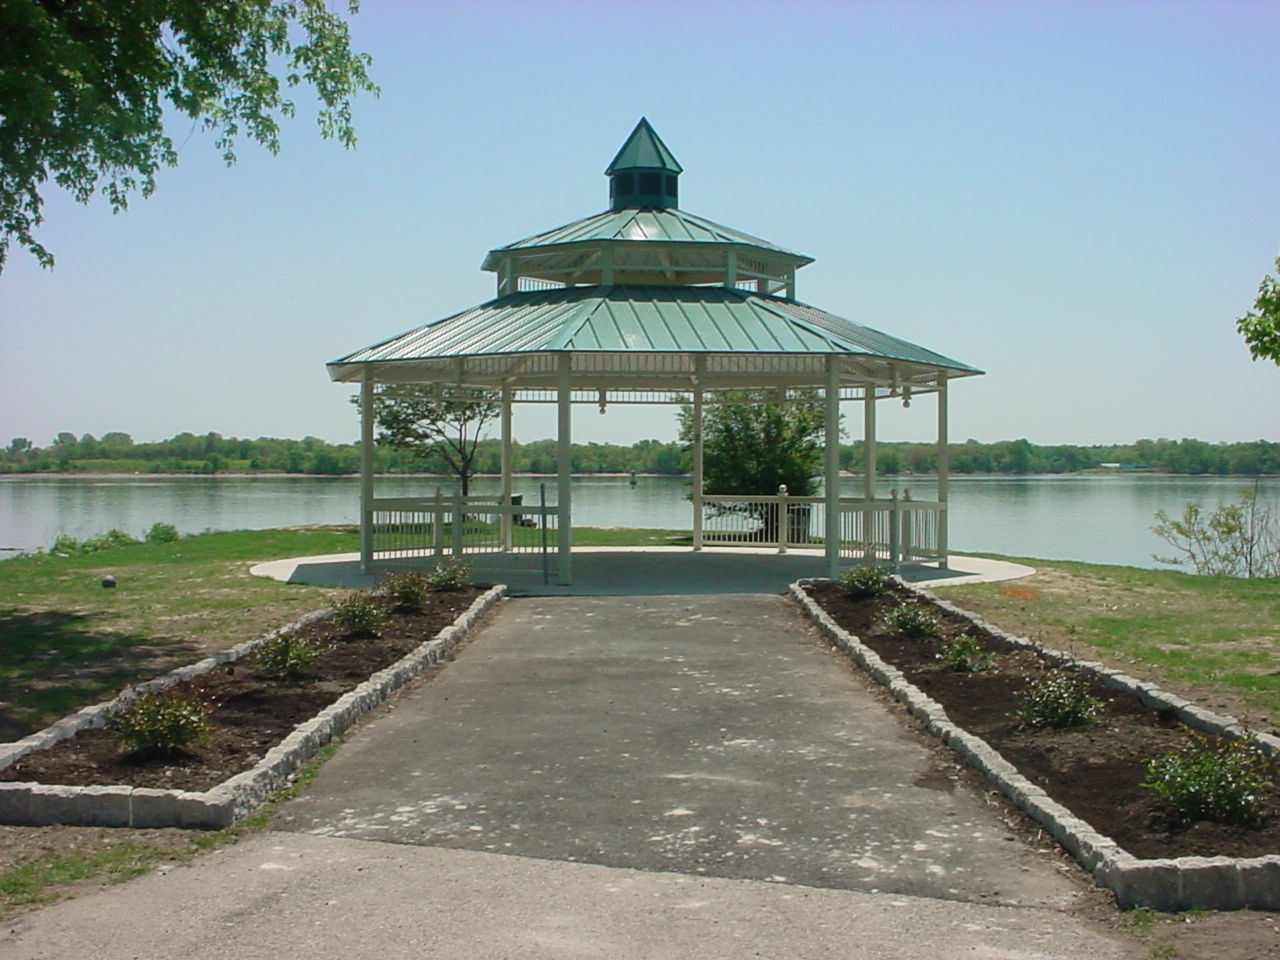 Pennypack Park's Gazebo | Credit: Major Artery Revitalization Committee